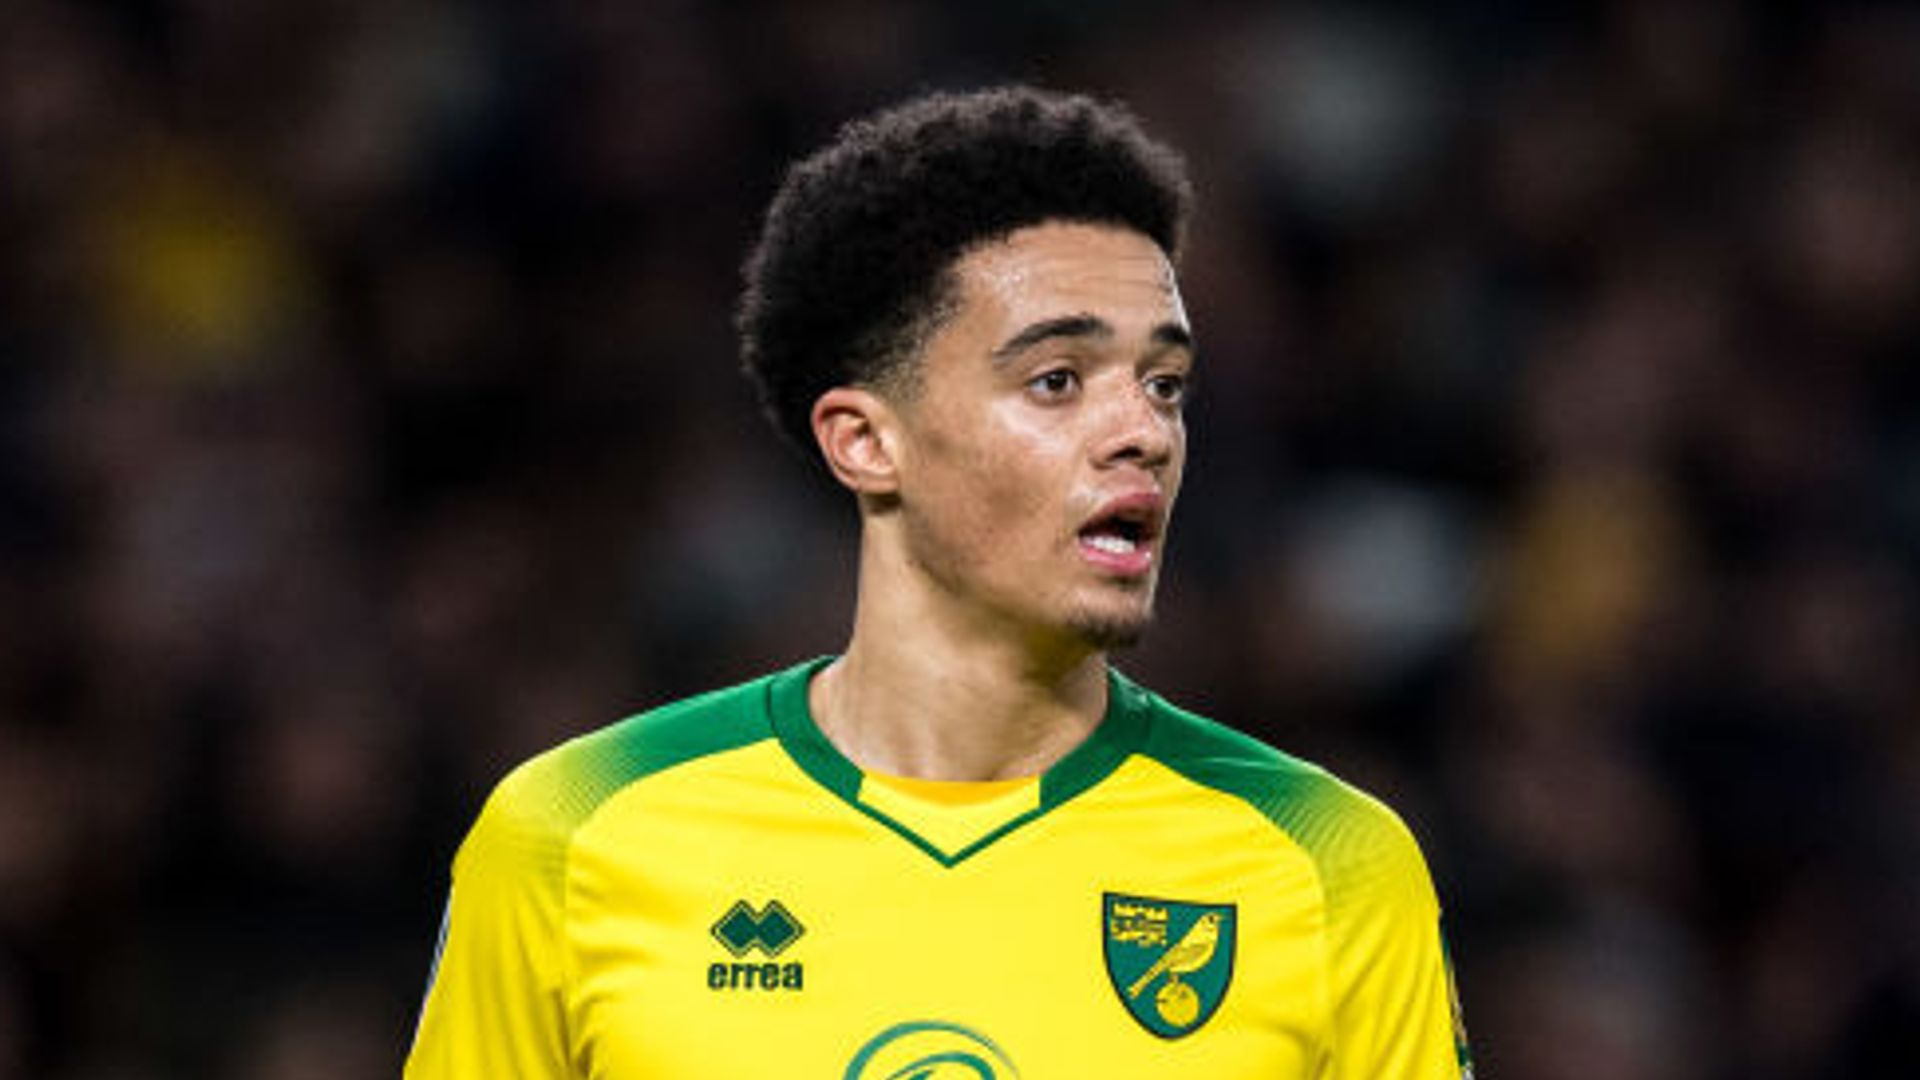 Liverpool's £10m bid for Lewis rejected